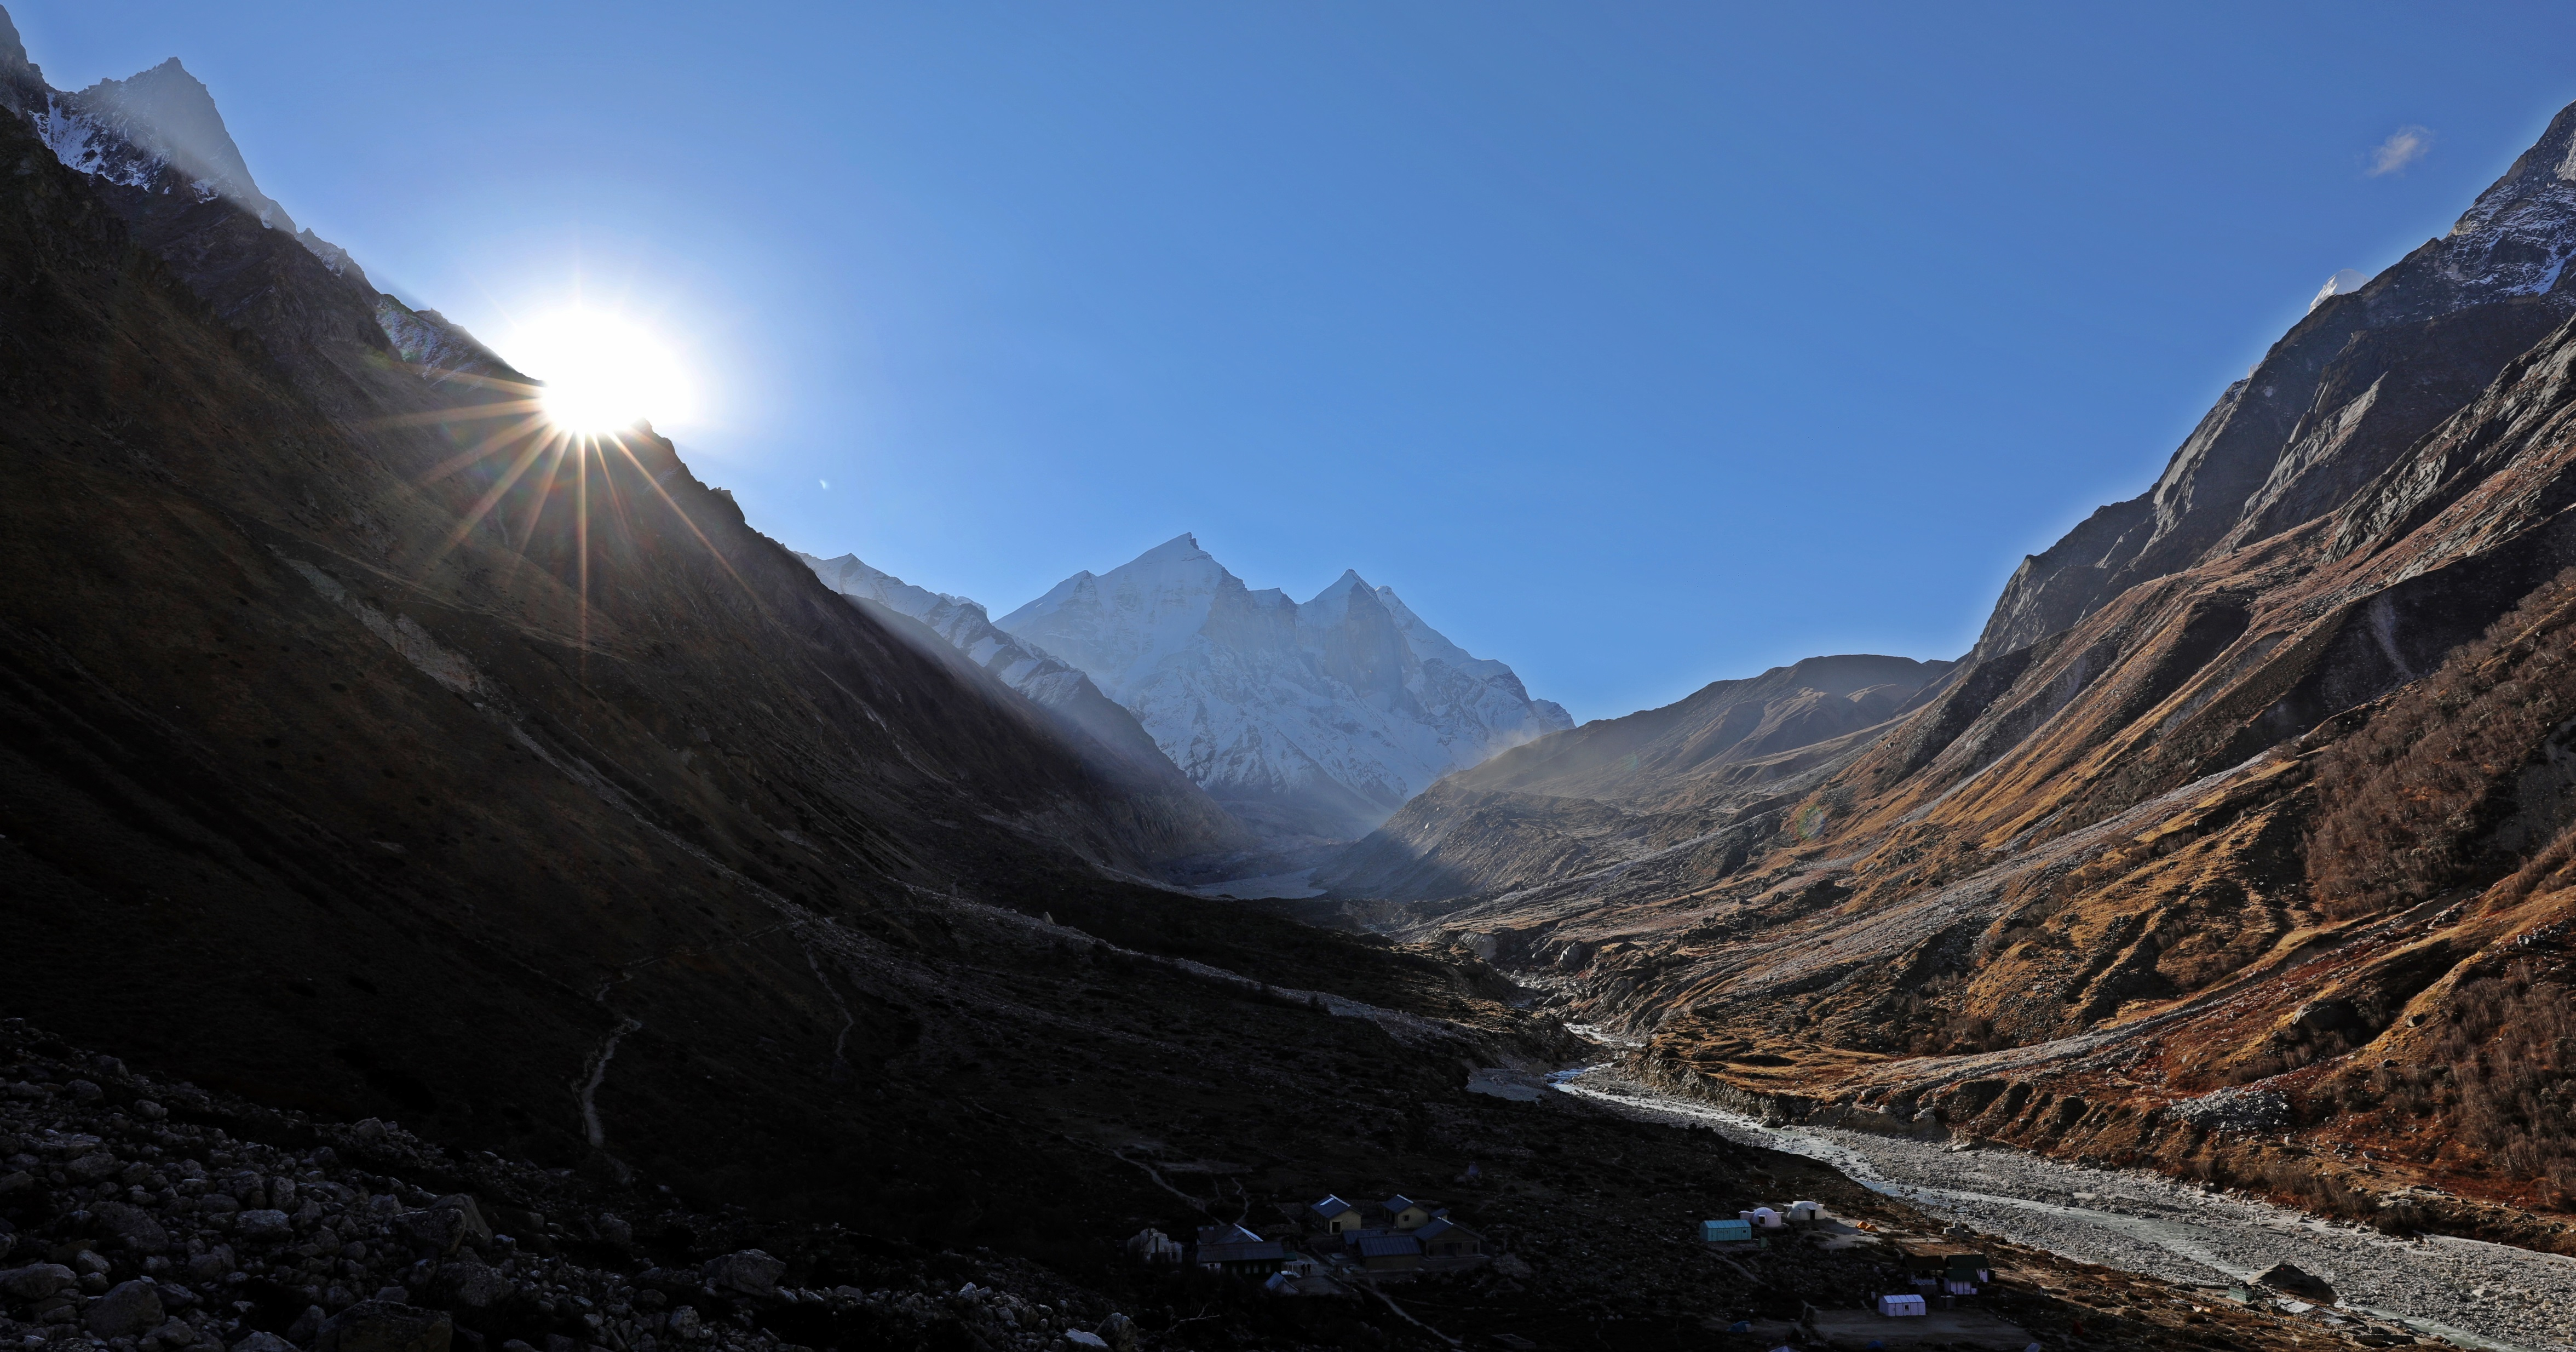 Sunrise beside Bhagirathi 1, 2, 3 at camp 2